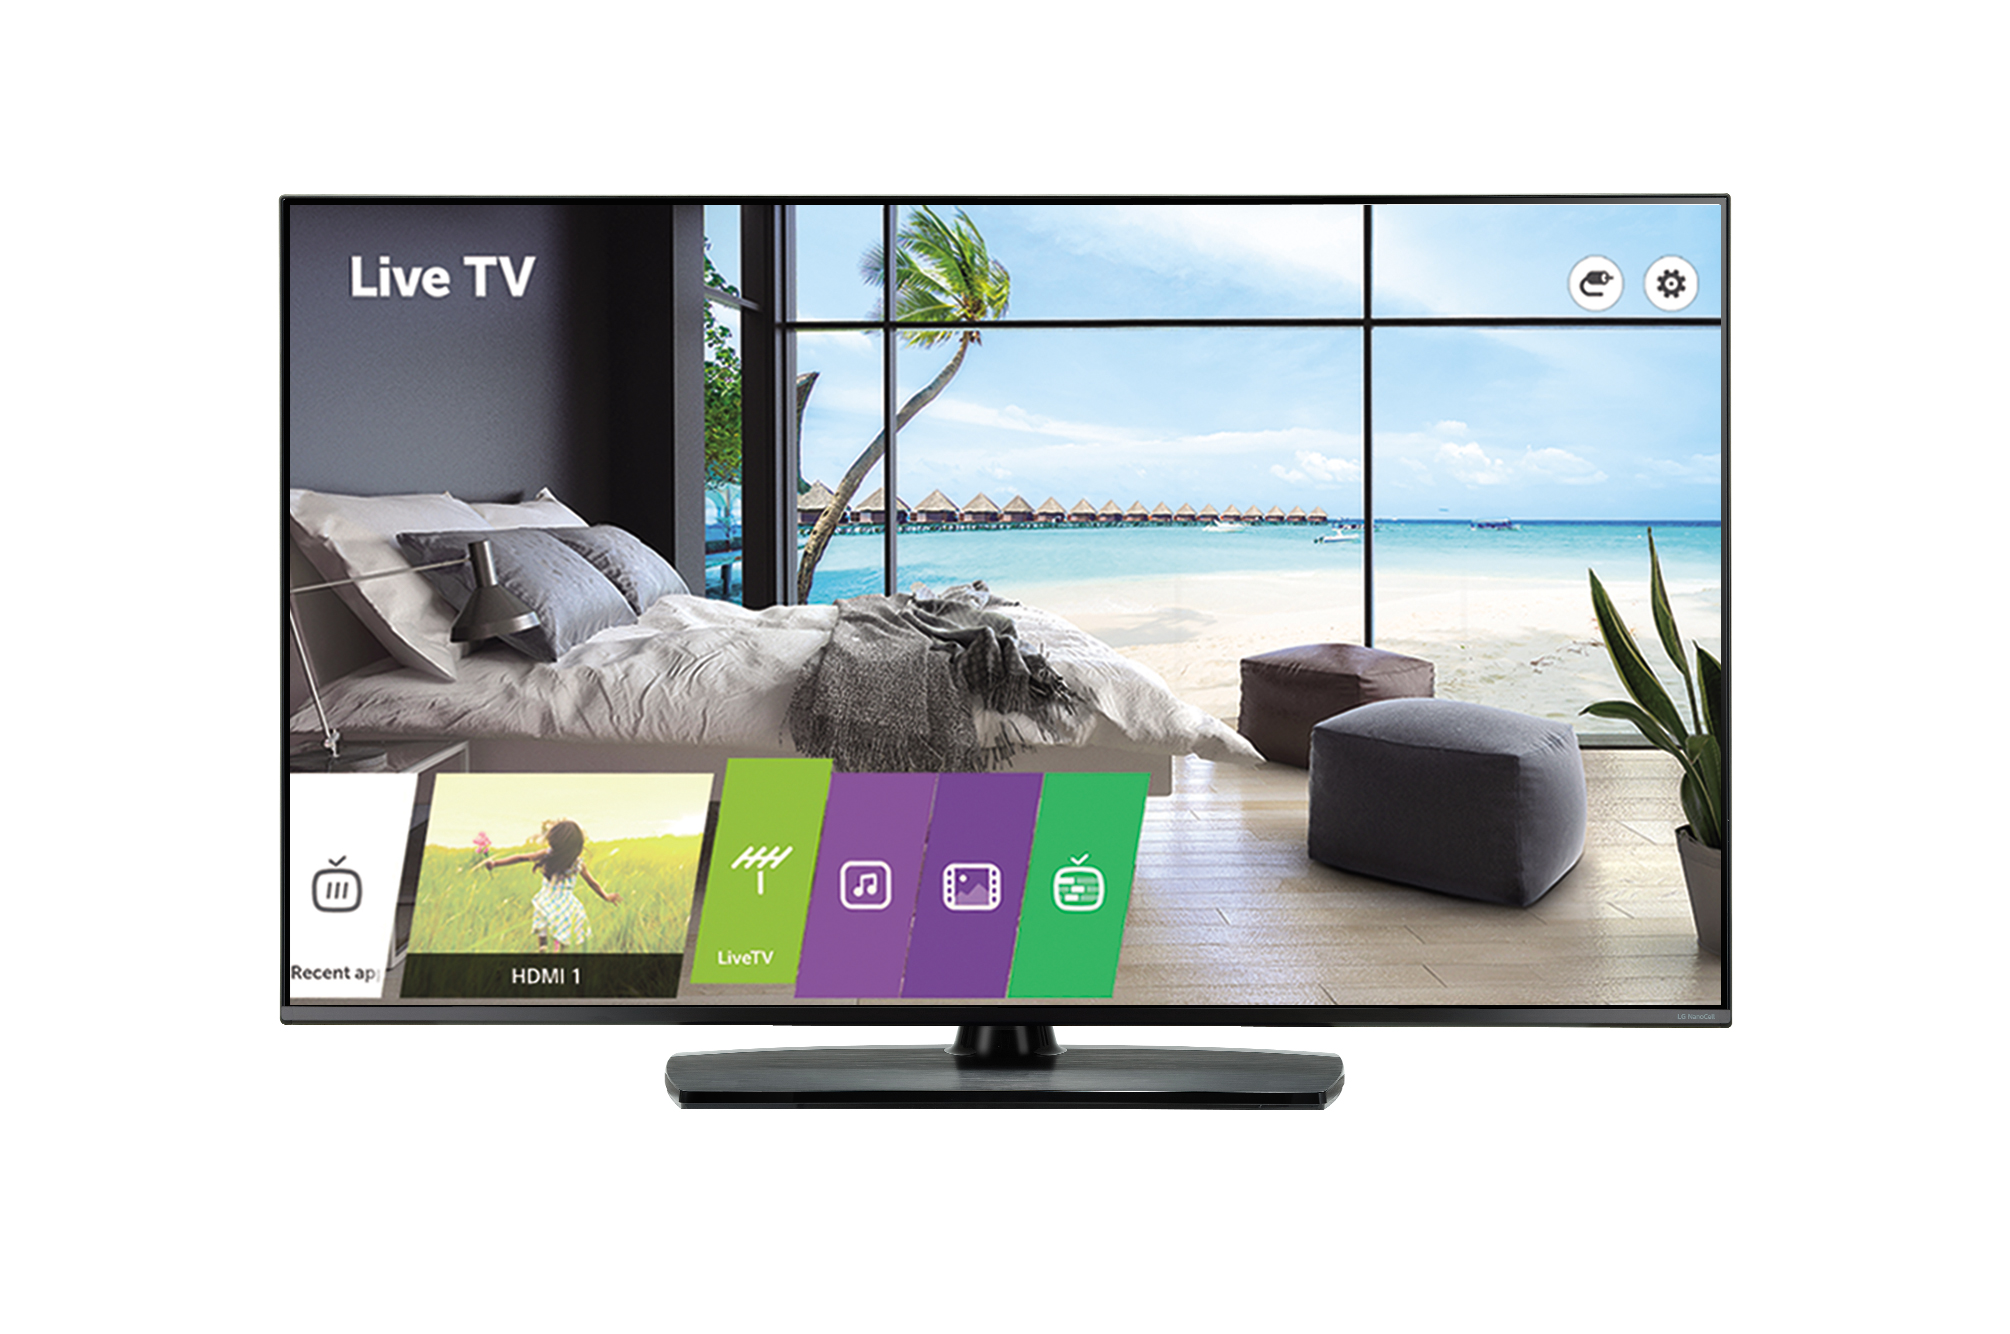 LG, COMMERCIAL, HOTEL, (UT761H), 55, UHD, TV, 3840x2160, HDMI, LAN, SPKR, PRO:CENTRIC, S/W, 3YR,